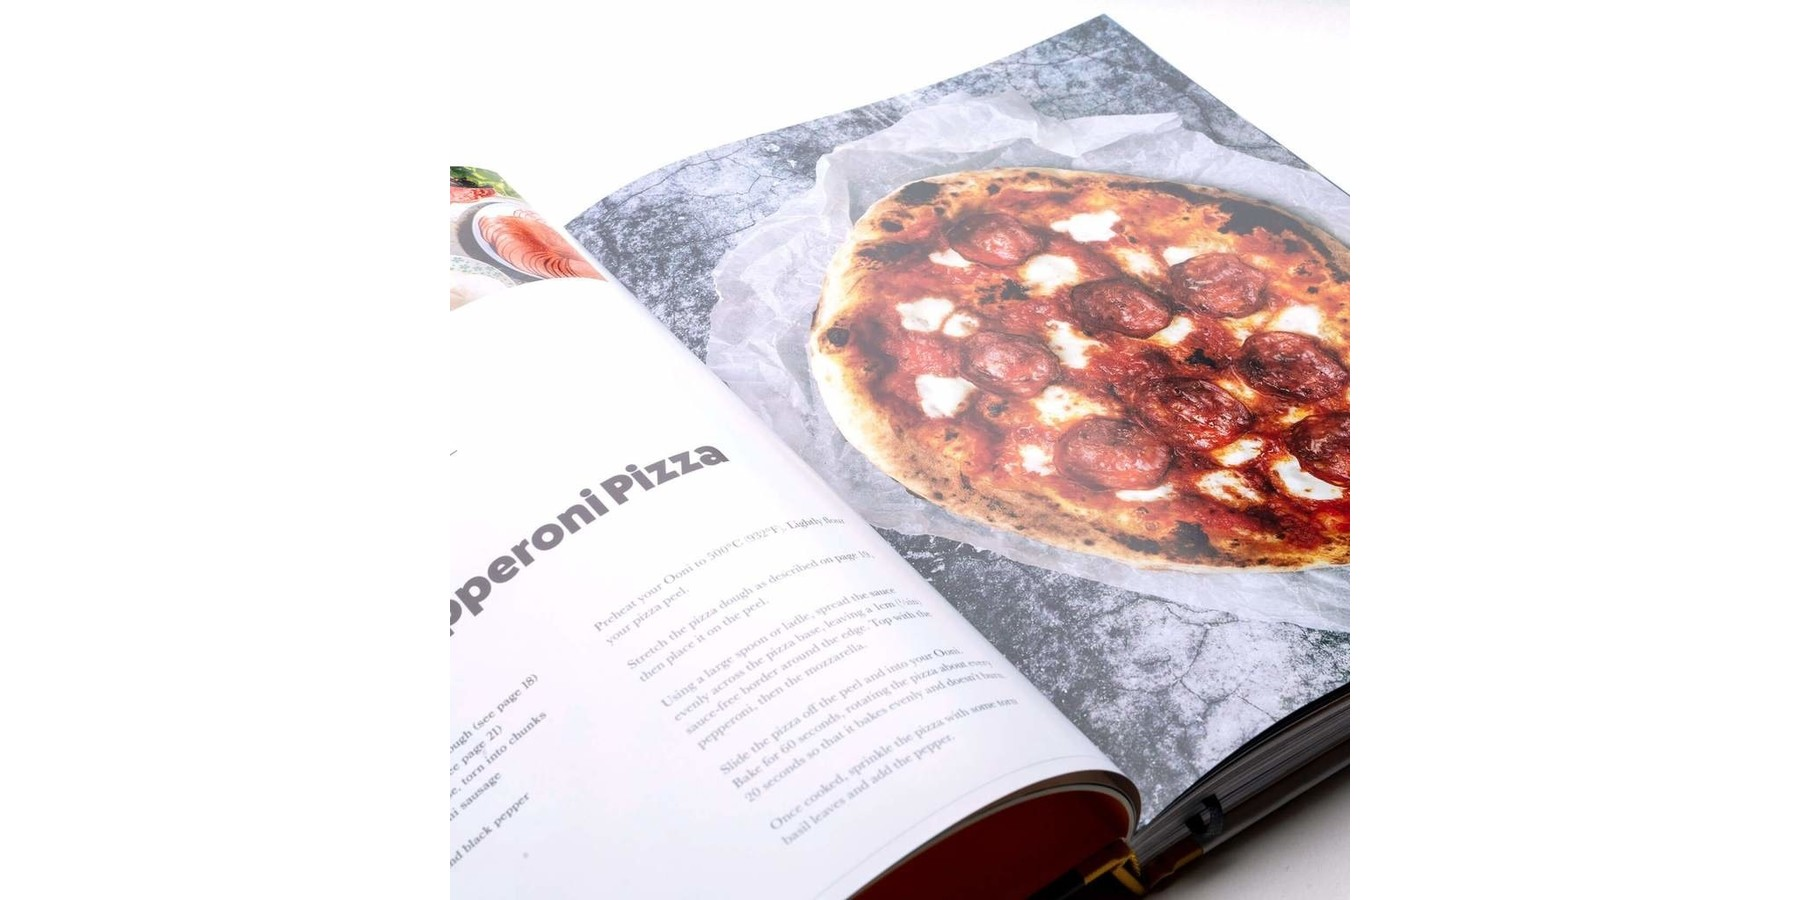 Pizzaboek: Cooking with fire